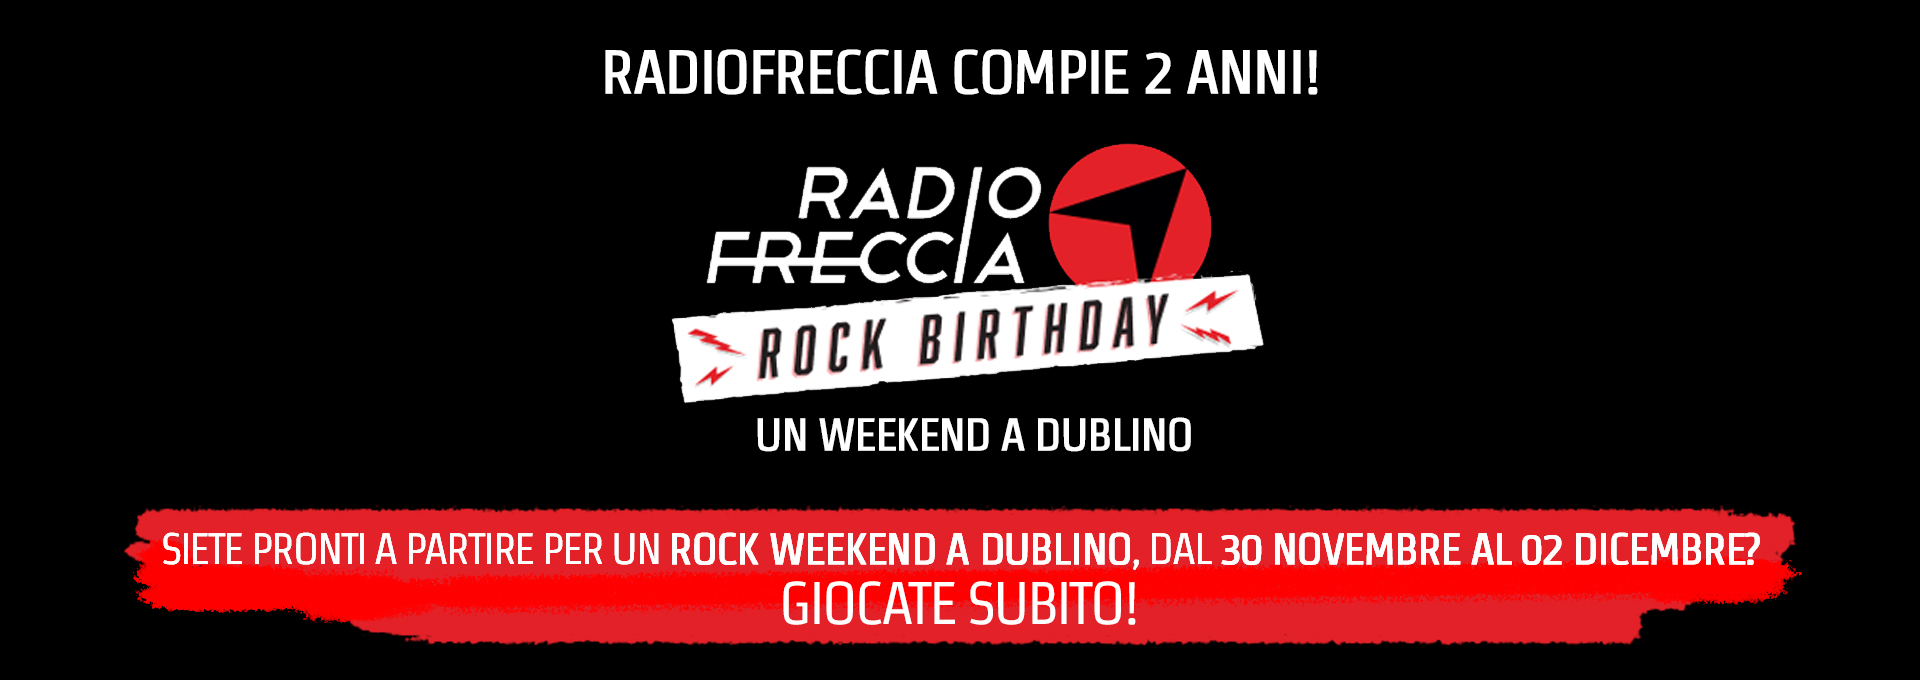 Radiofreccia Rock Birthday - Un weekend a Dublino